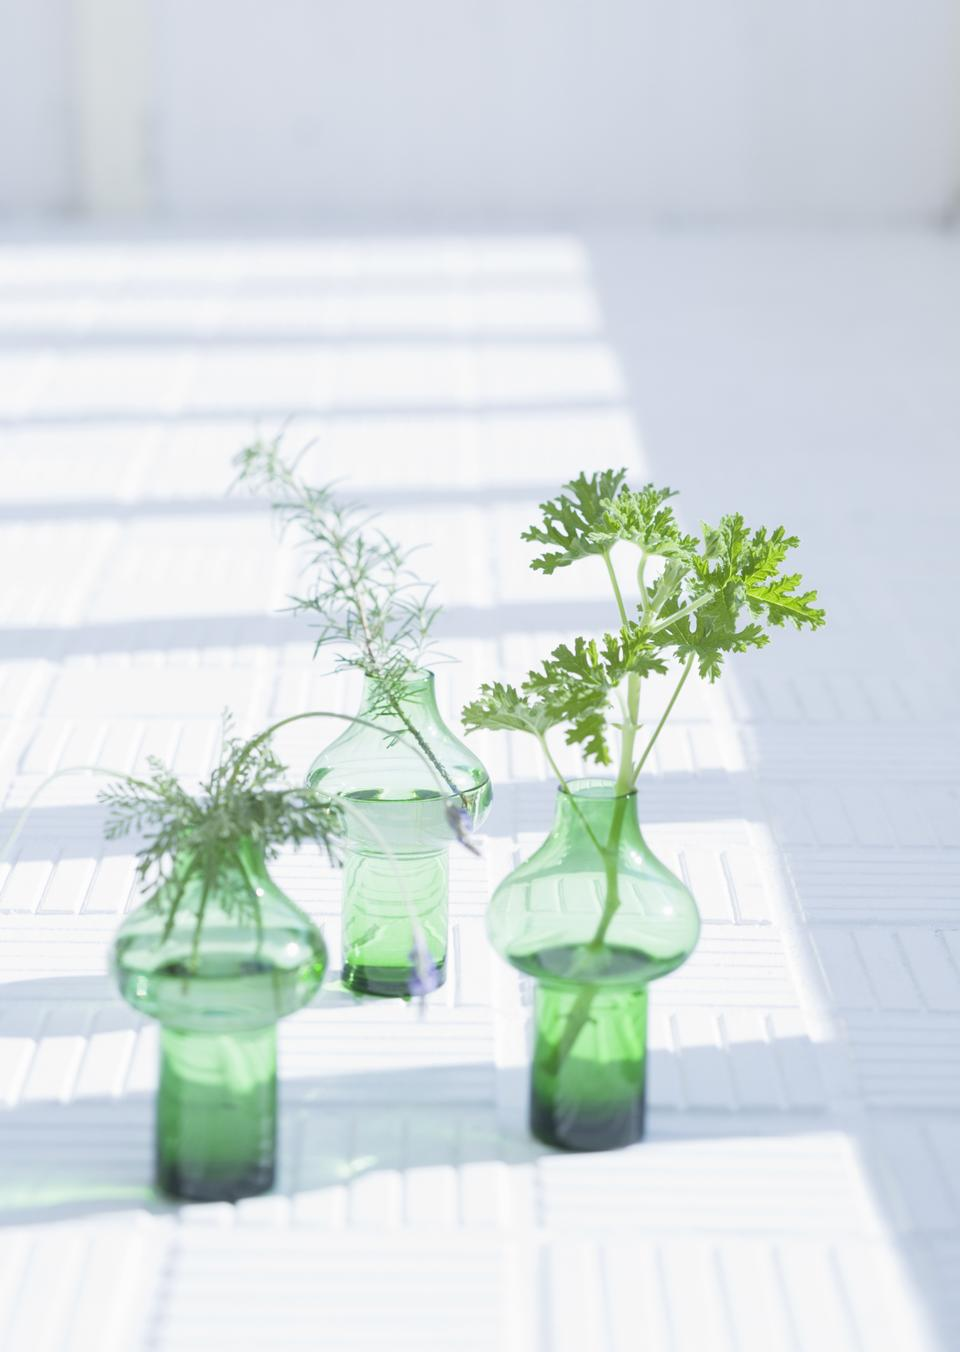 Three green herb leaves in glass under windows